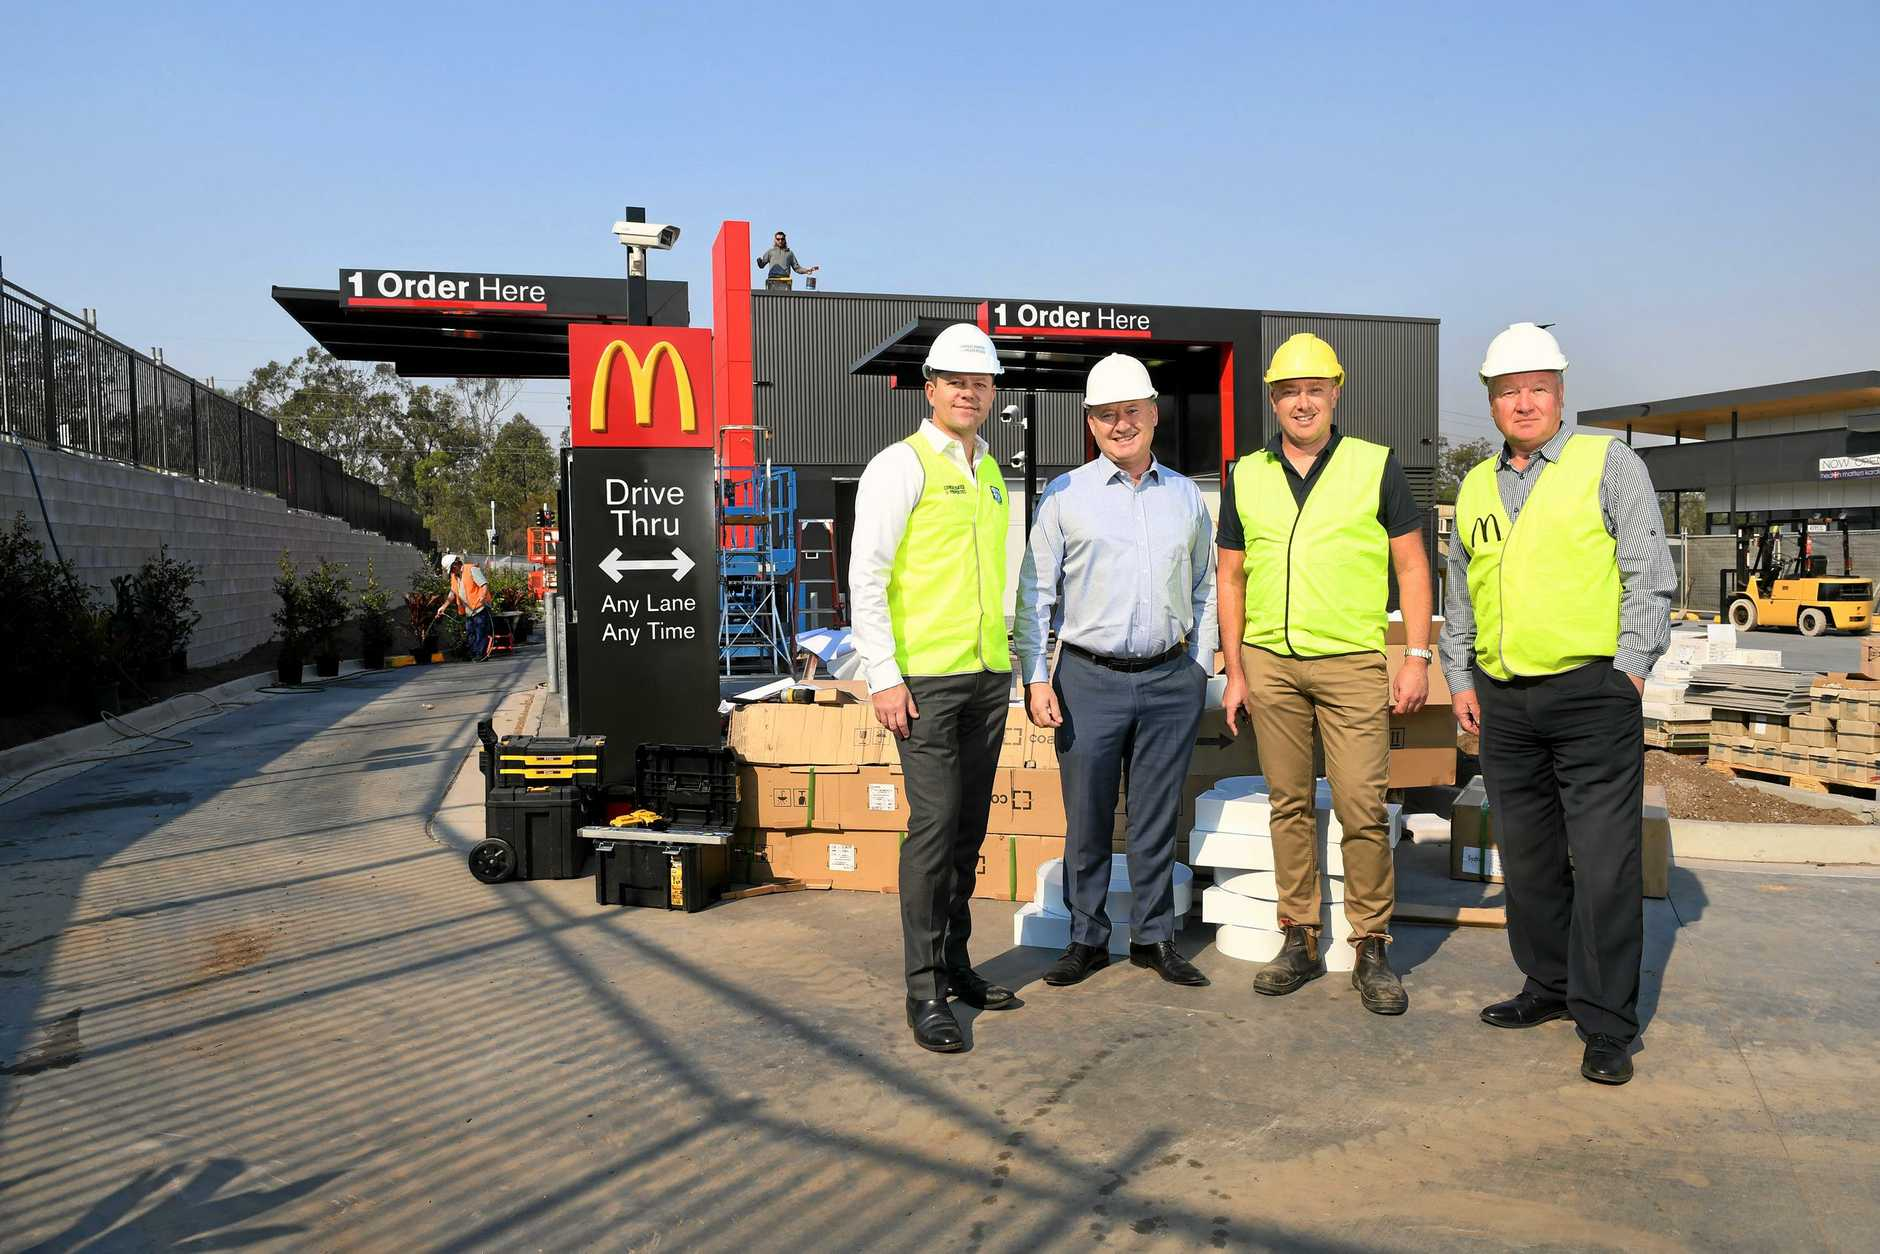 McDonald's at Karalee is set to open within the next two weeks. Consolidated Properties Group senior development manager Ben Finemore, Karalee McDonald's Licensee Mark McCormack, McDonald's Australia development manager of construction Paul Sanders and McDonald's Australia development manager Chris Hollis.